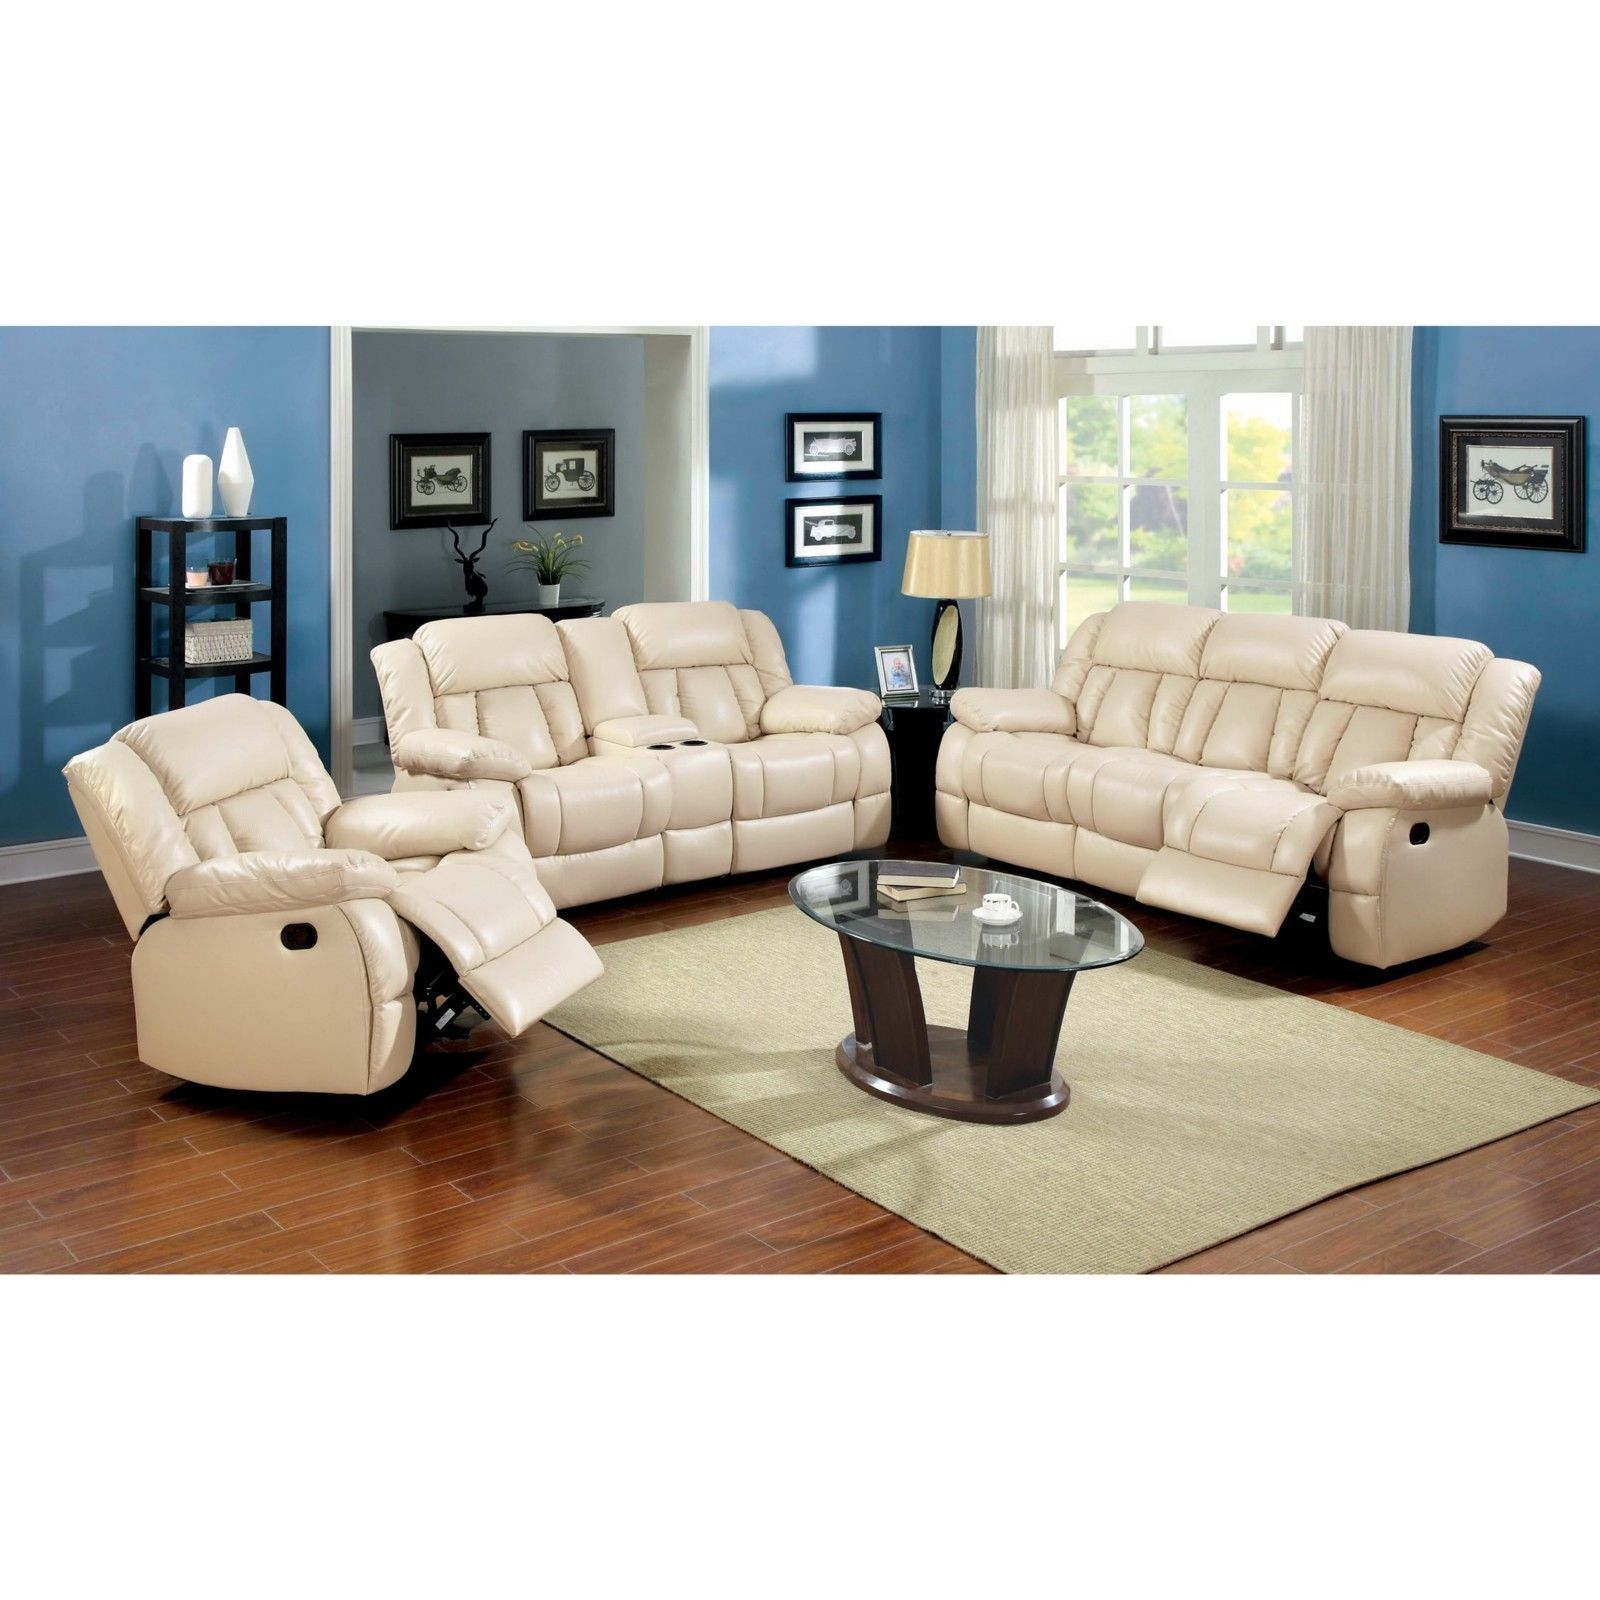 Furniture of america barbz piece ivory bonded leather recliner